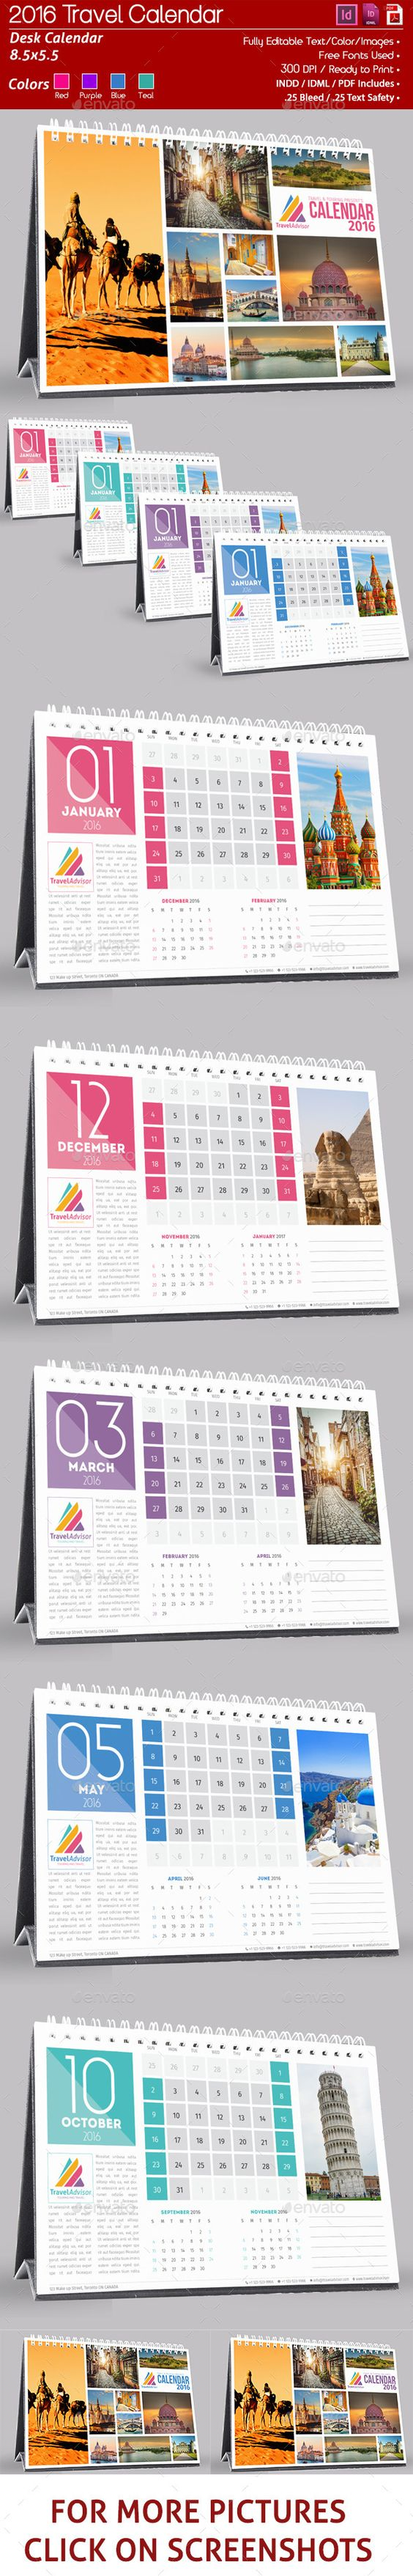 Corporate 12 Page 2016 Desk Calendar Template InDesign INDD #design Download: http://graphicriver.net/item/corporate-12-page-2016-desk-calendar/14068233?ref=ksioks